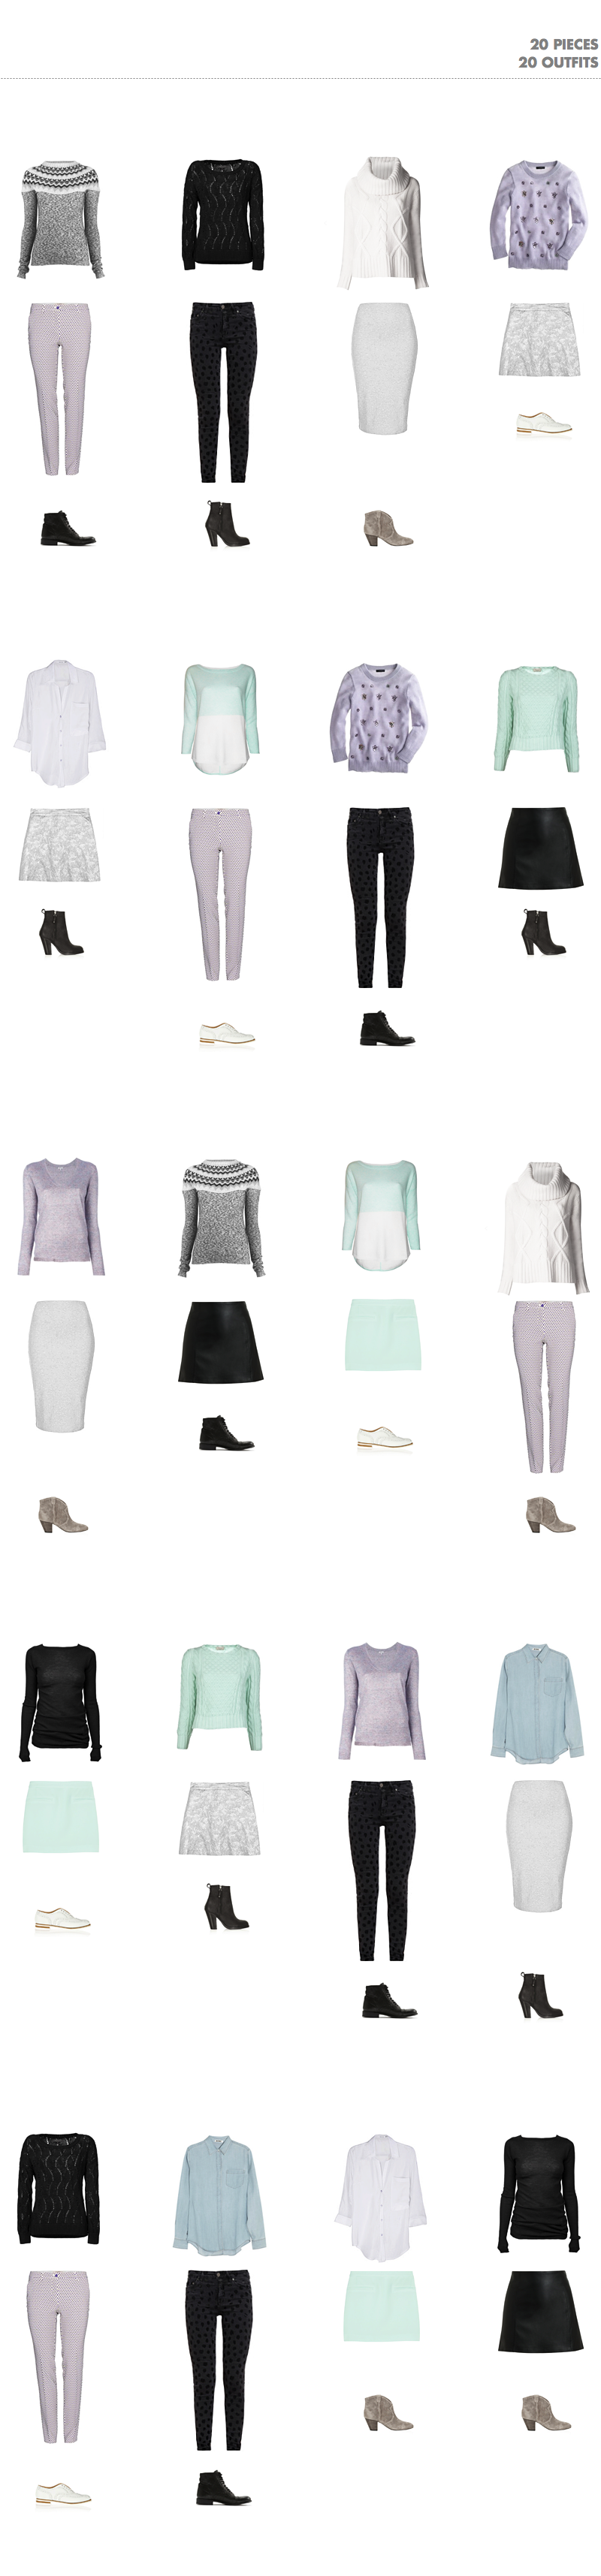 Winter Capsule Wardrobe: 20 Outfits with 20 Pieces